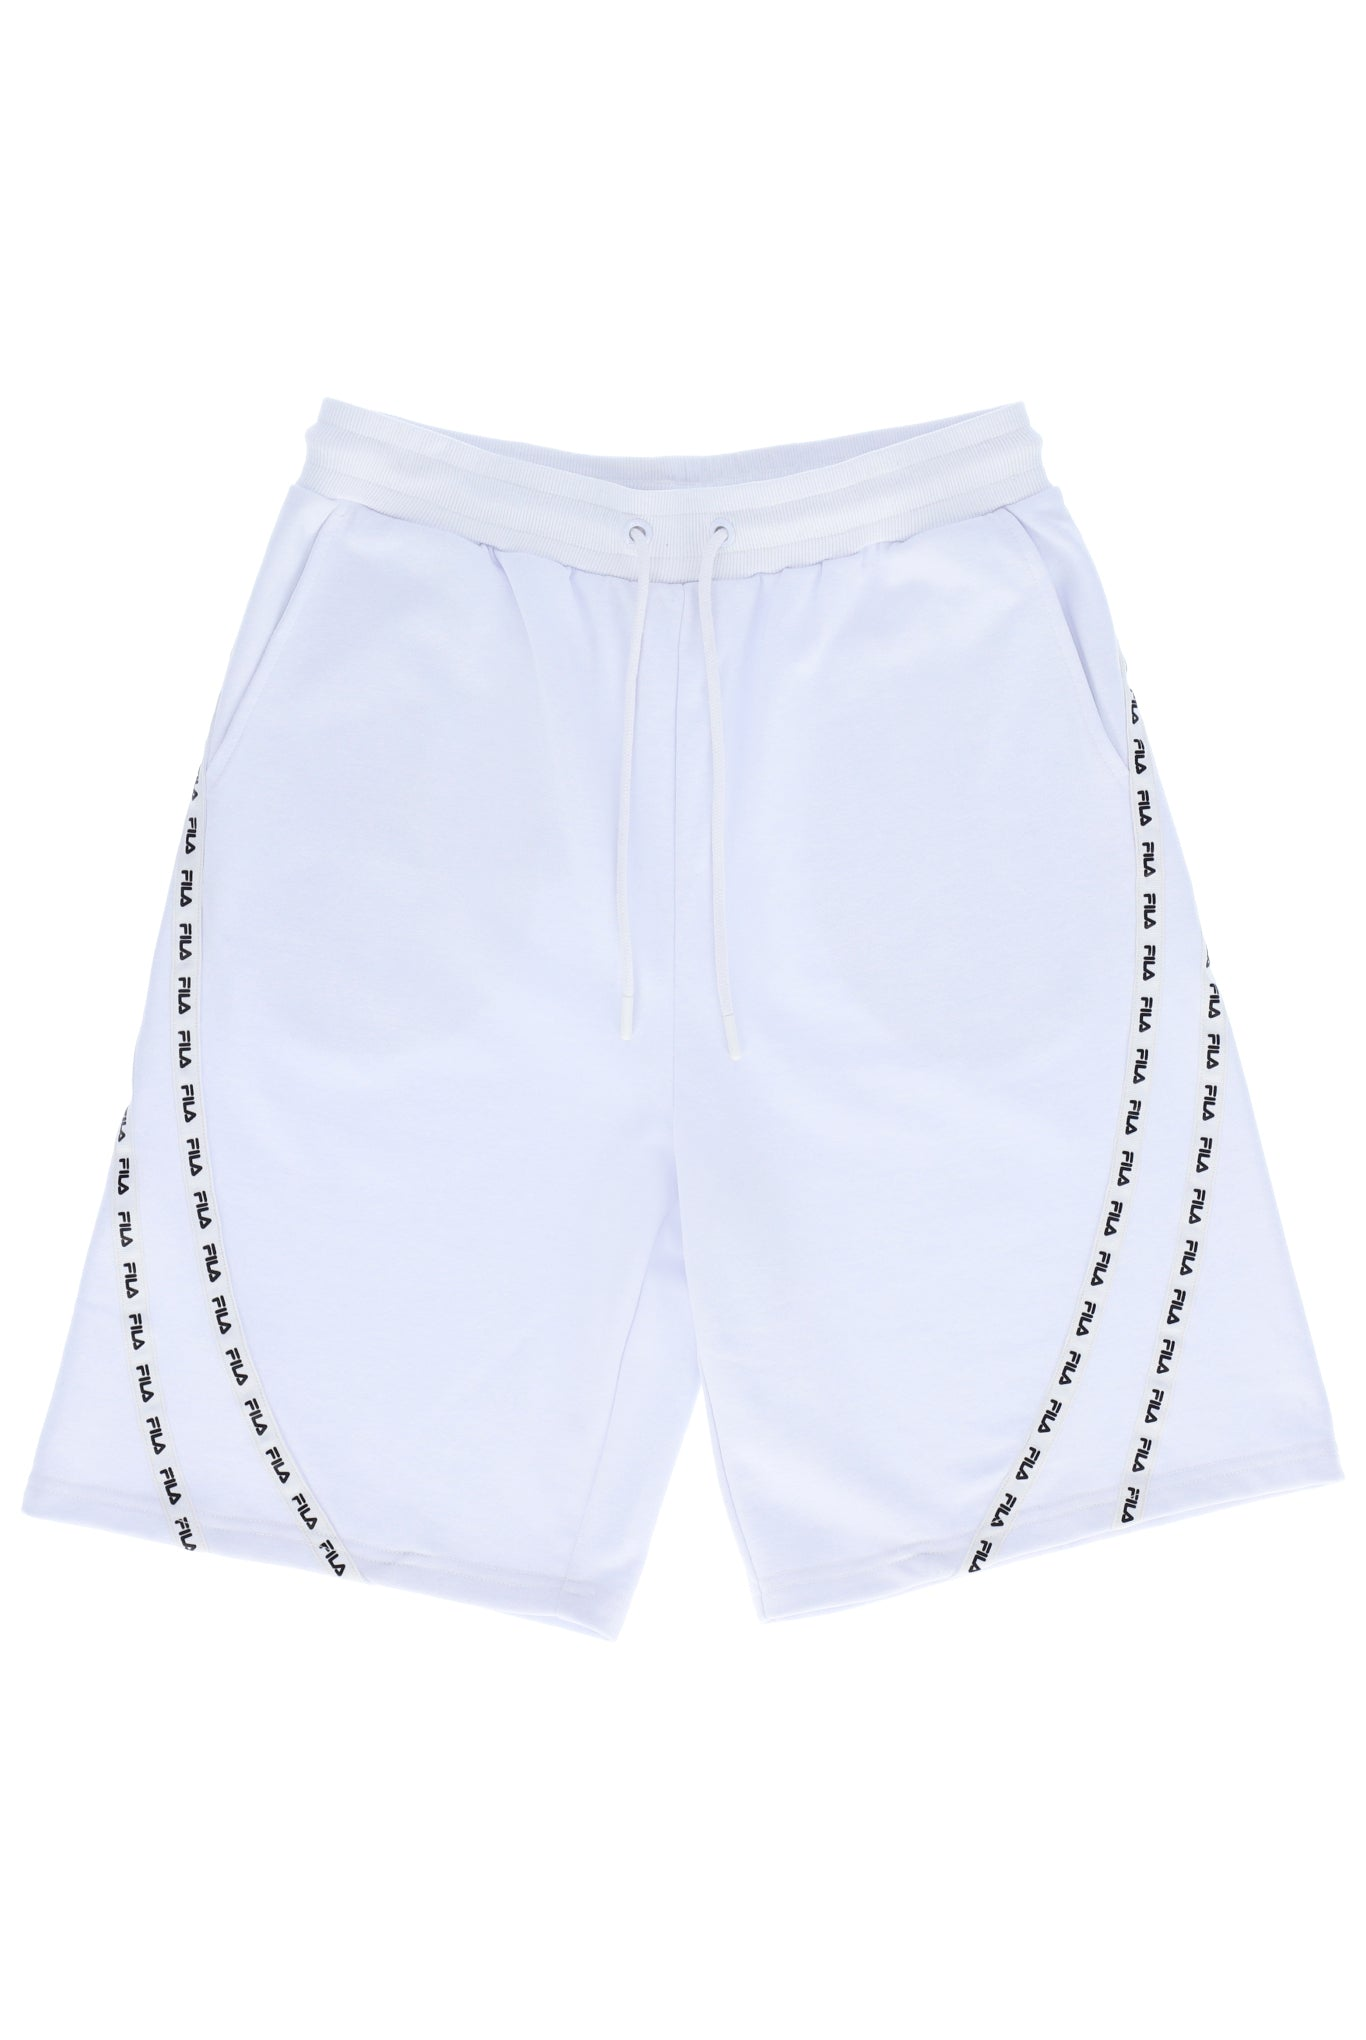 Salvation Glow Tape Shorts